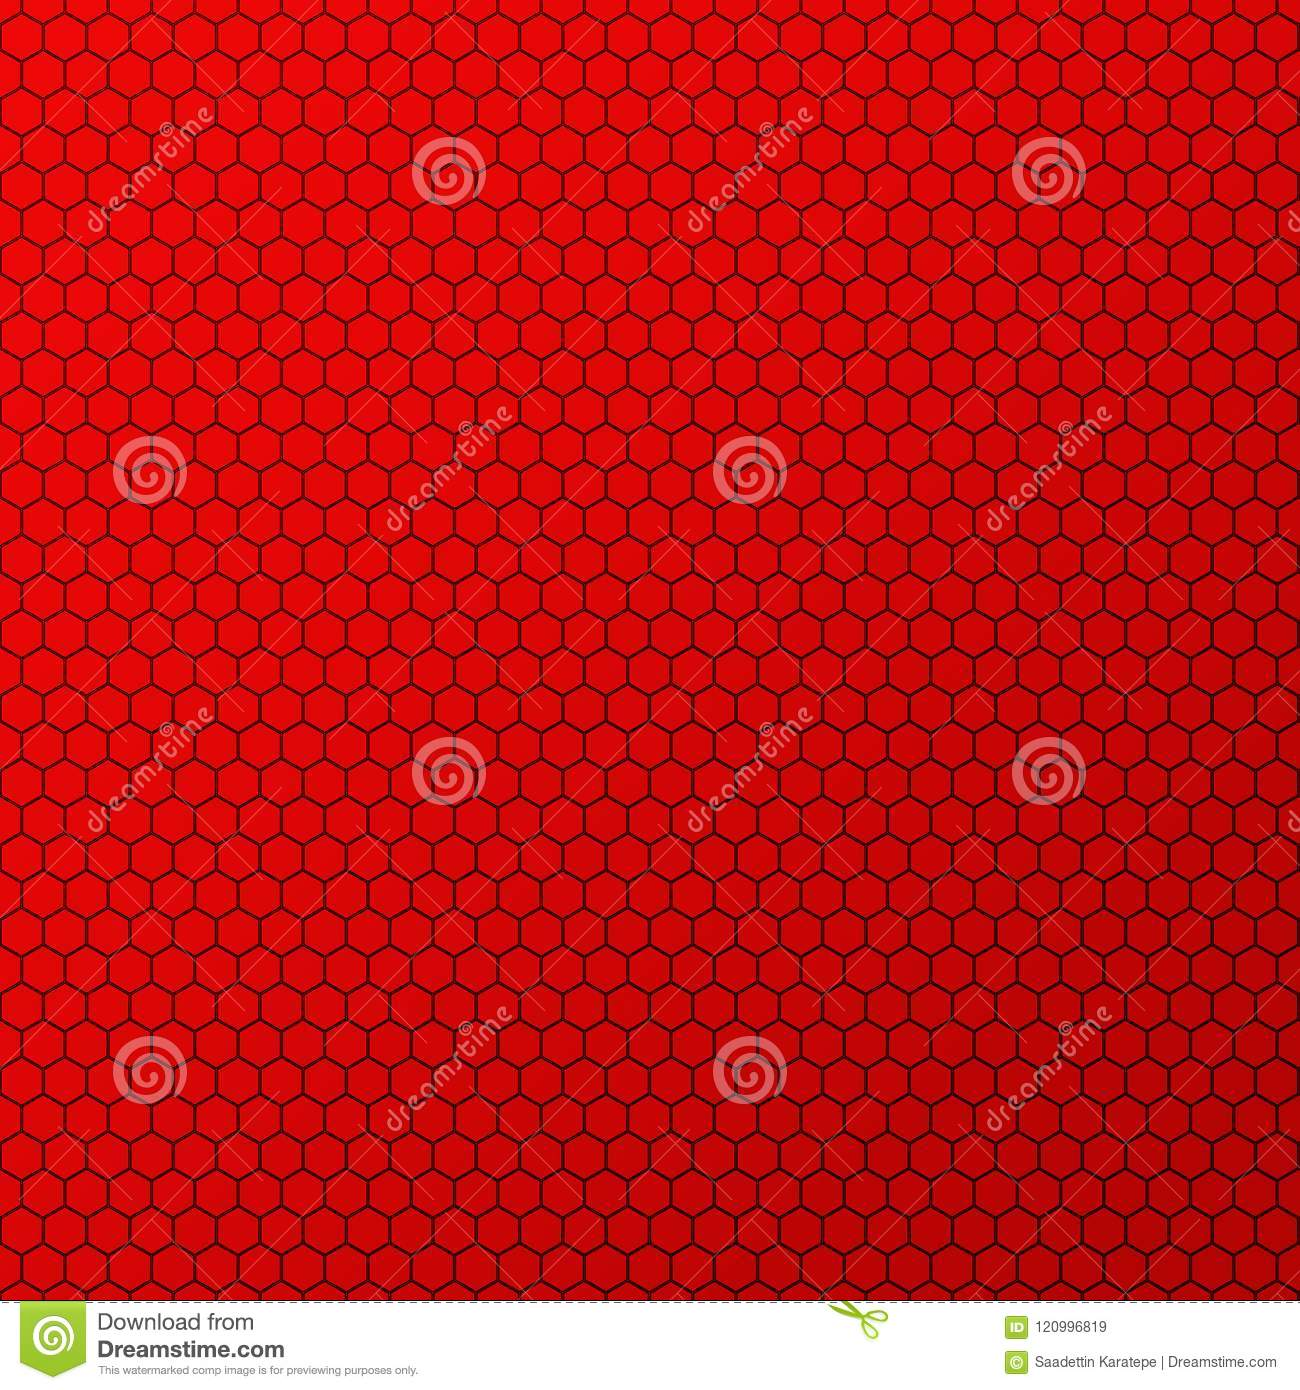 Red Honeycomb Design Abstract Background. Stock